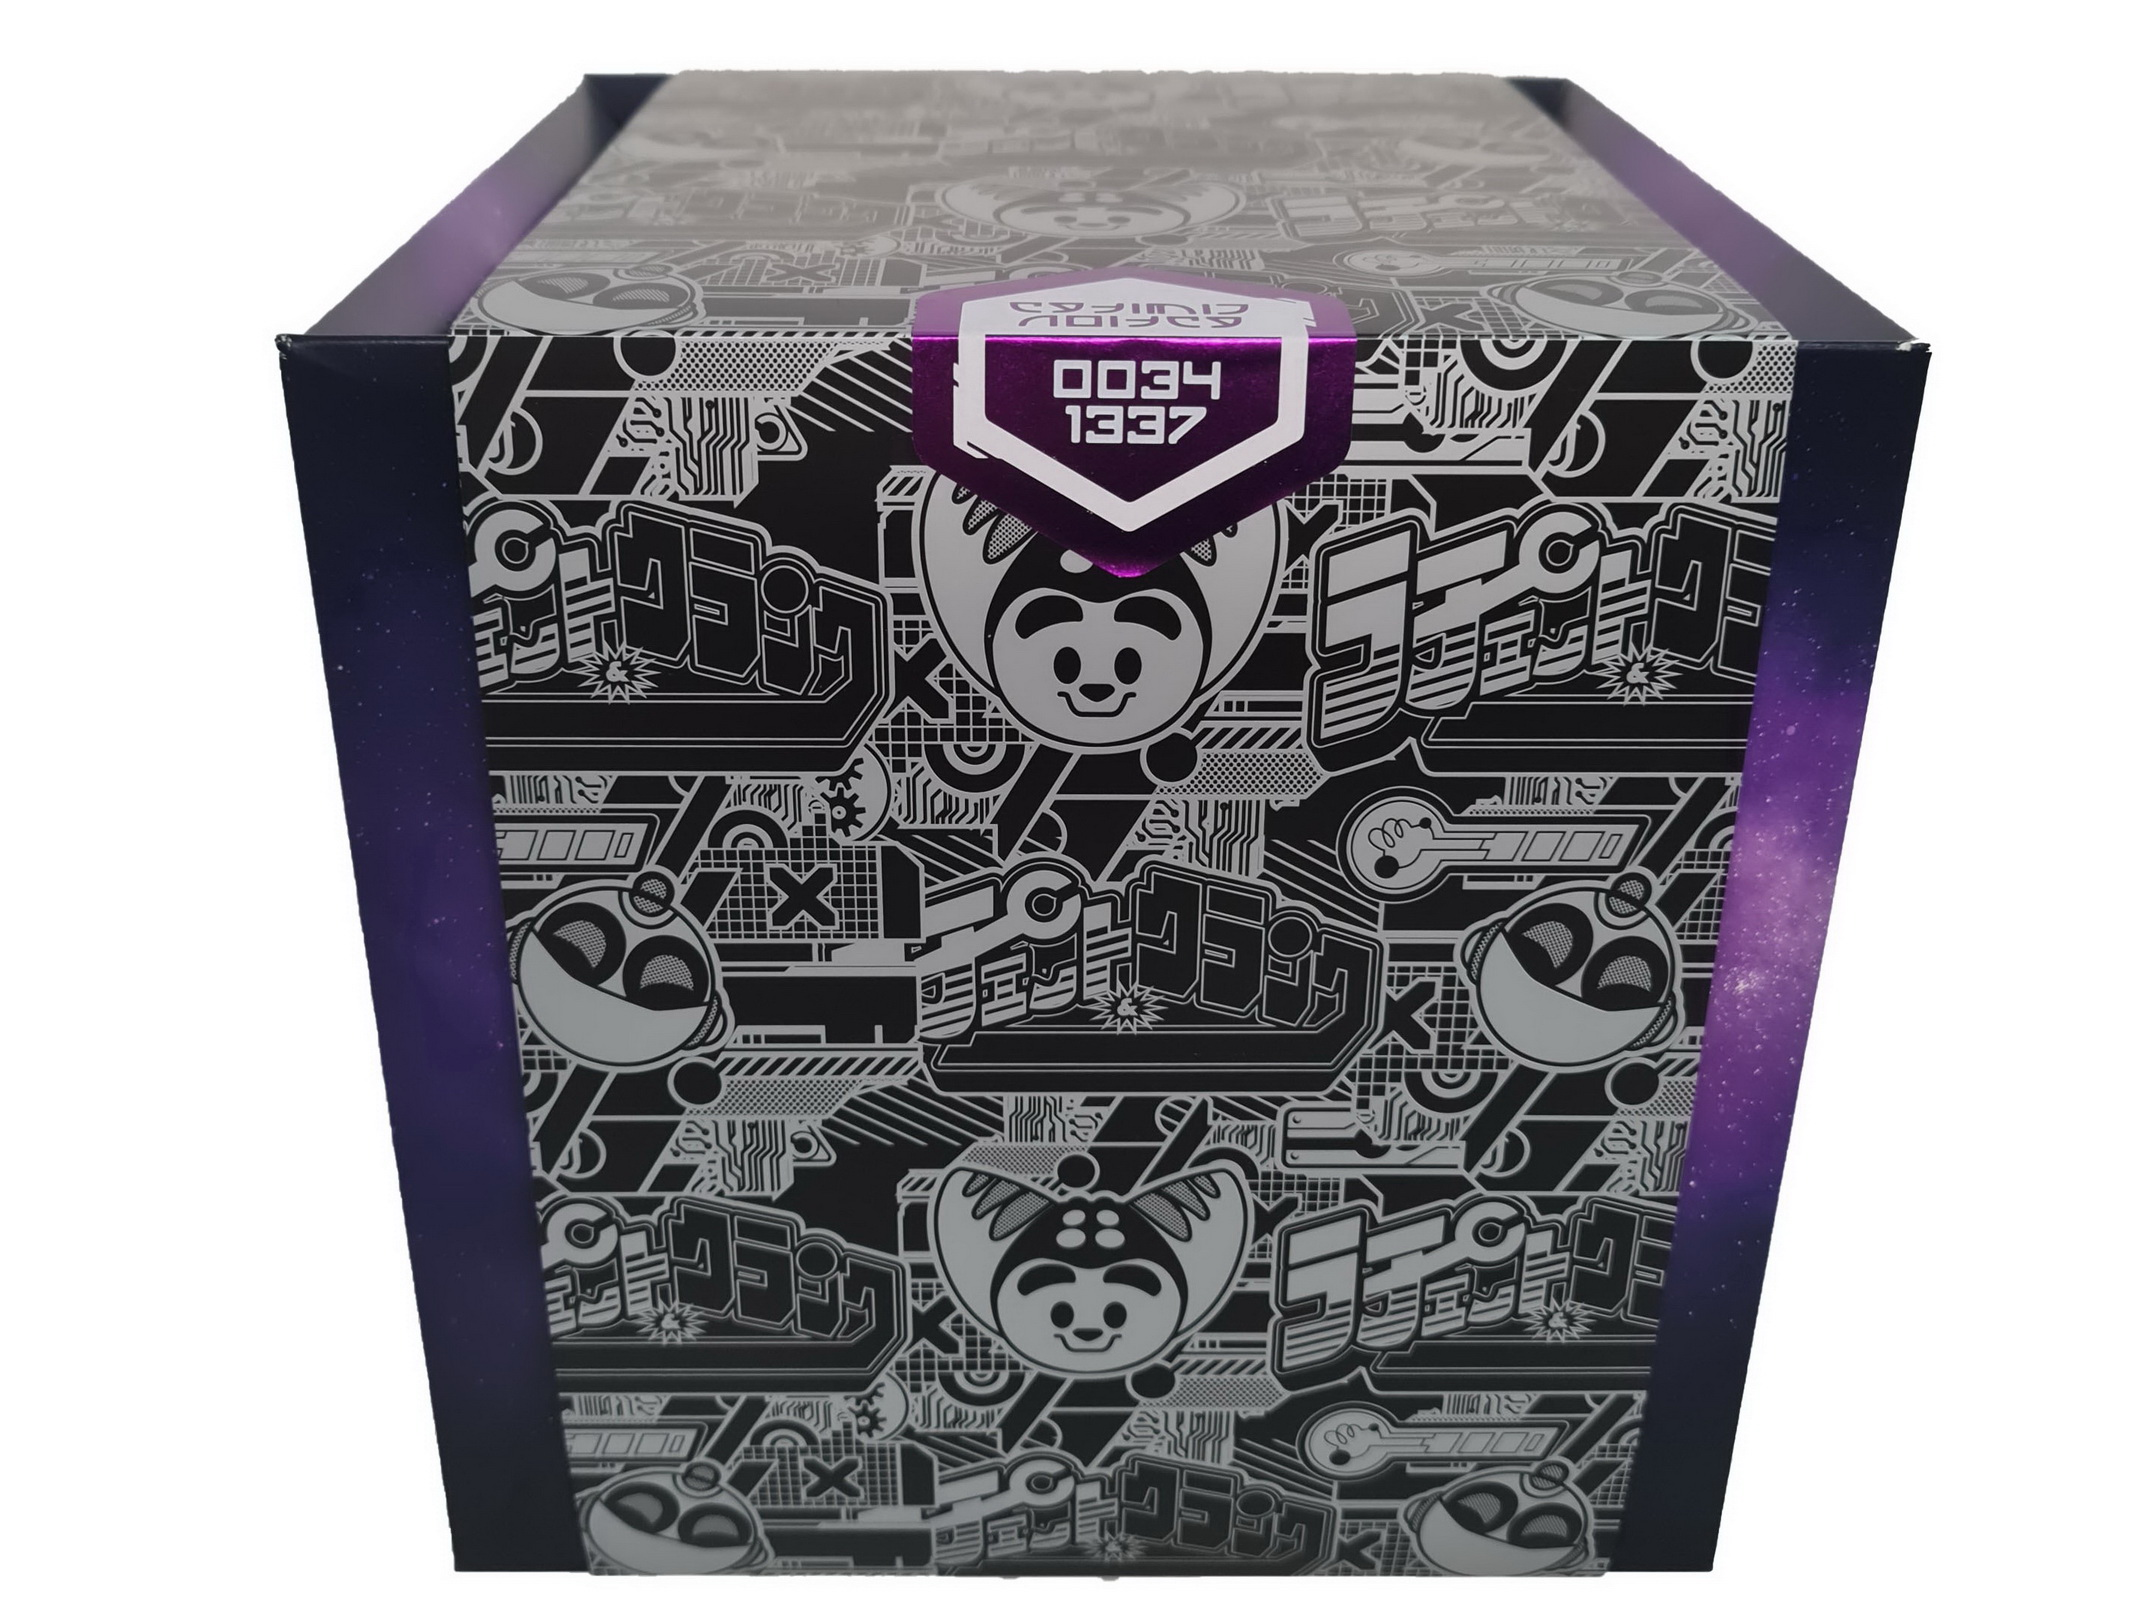 Kit-presse-Ratchet-and-Clank-unboxing-01